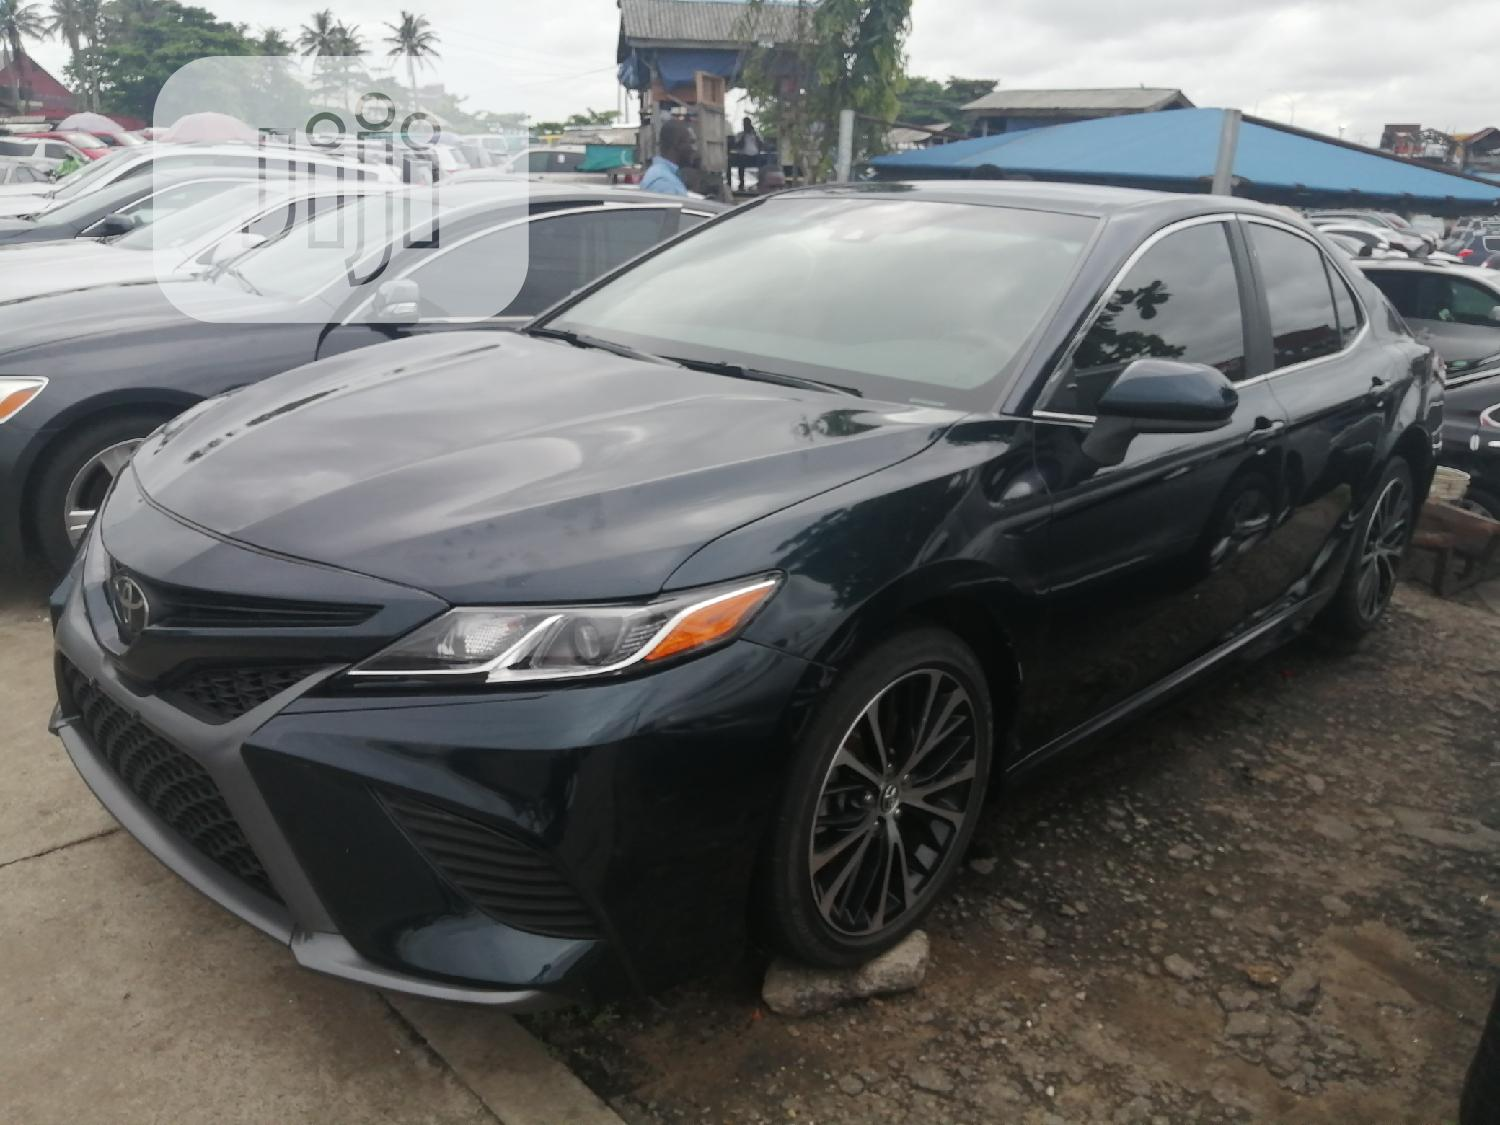 Toyota Camry 2018 SE FWD (2.5L 4cyl 8AM) Green